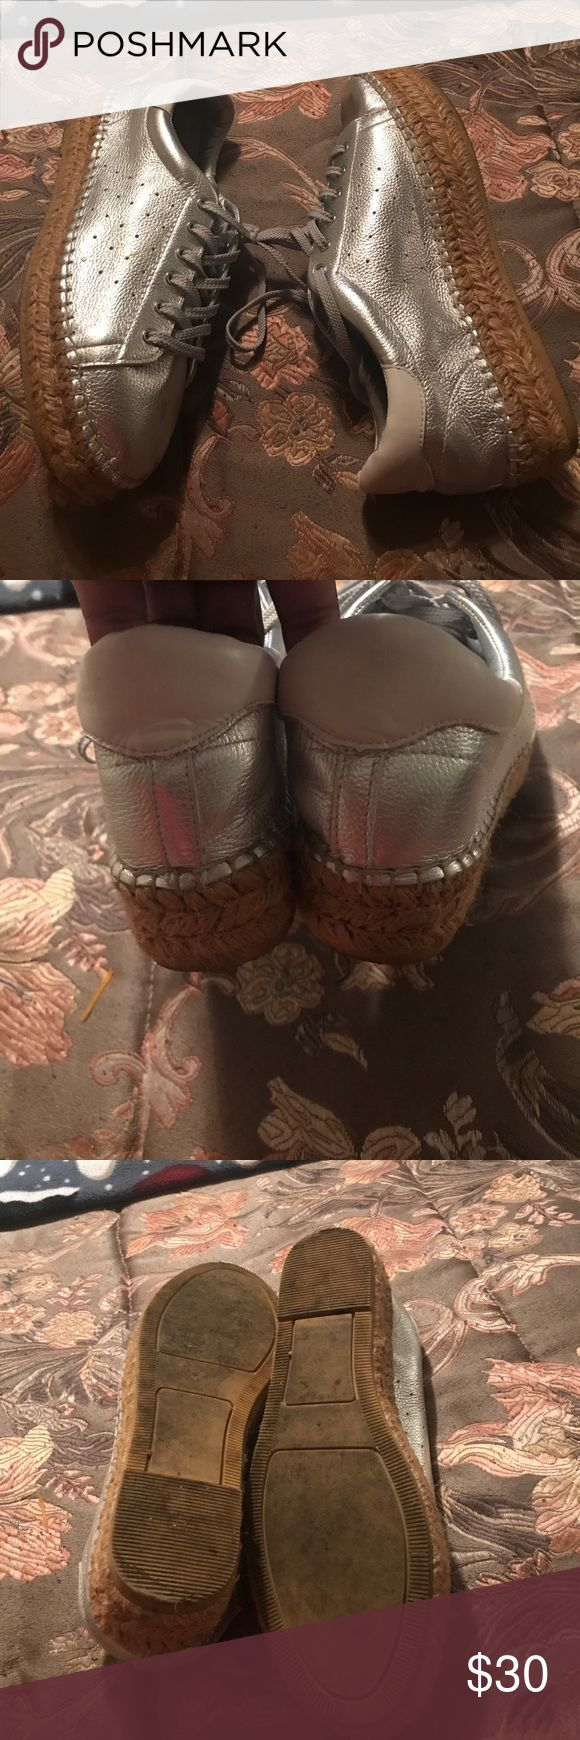 Steve Madden shoes Silver leathers sneaker Cute for a casual look type of day They are in good condition no holes ropes tears or stains SMOKE FREE/PET FREE HOME Steven By Steve Madden Shoes Athletic Shoes